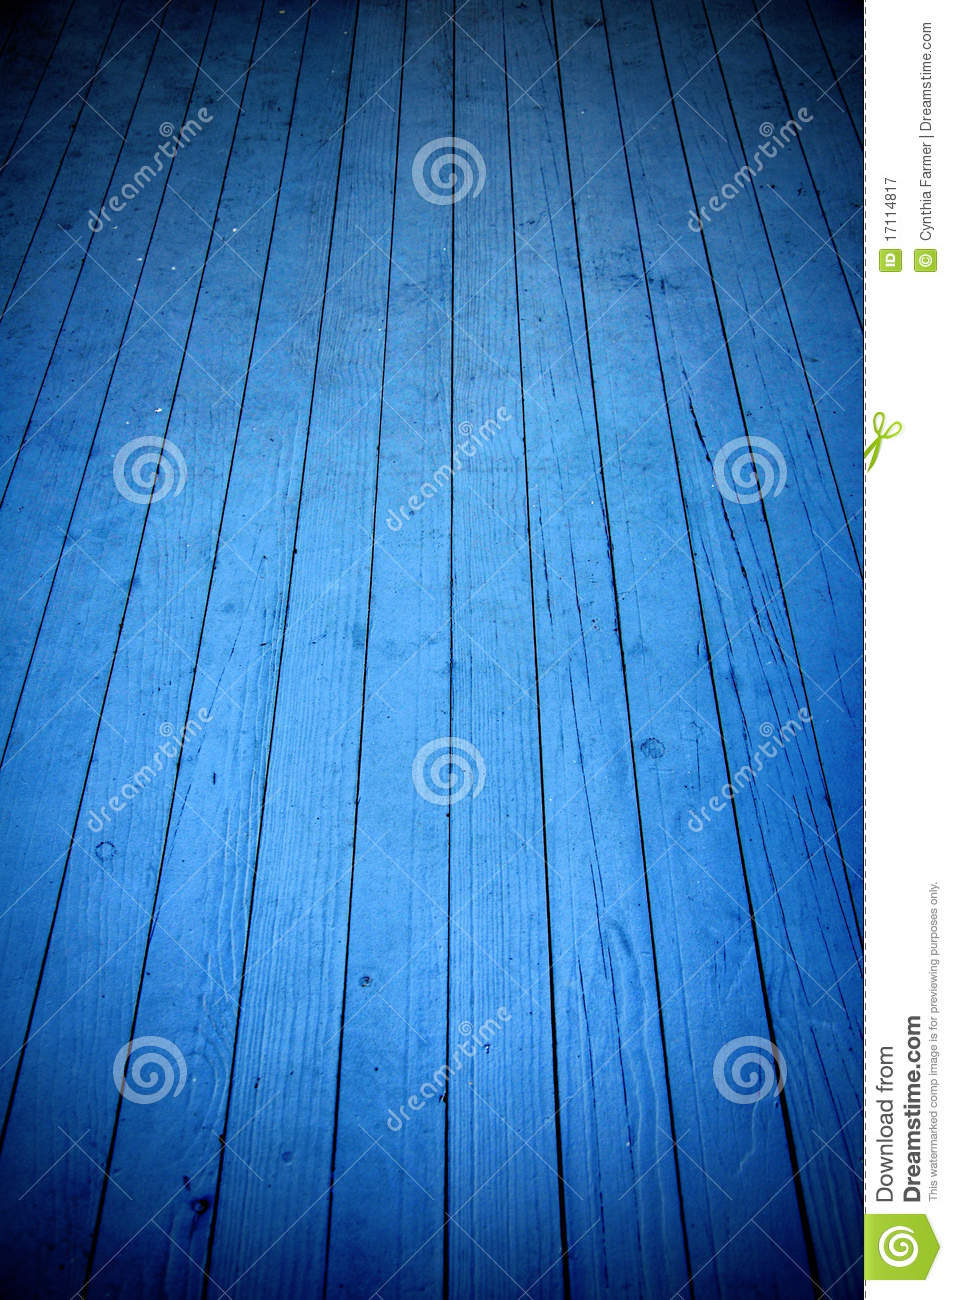 Blue Wood Floor Abstract Royalty Free Stock Photography